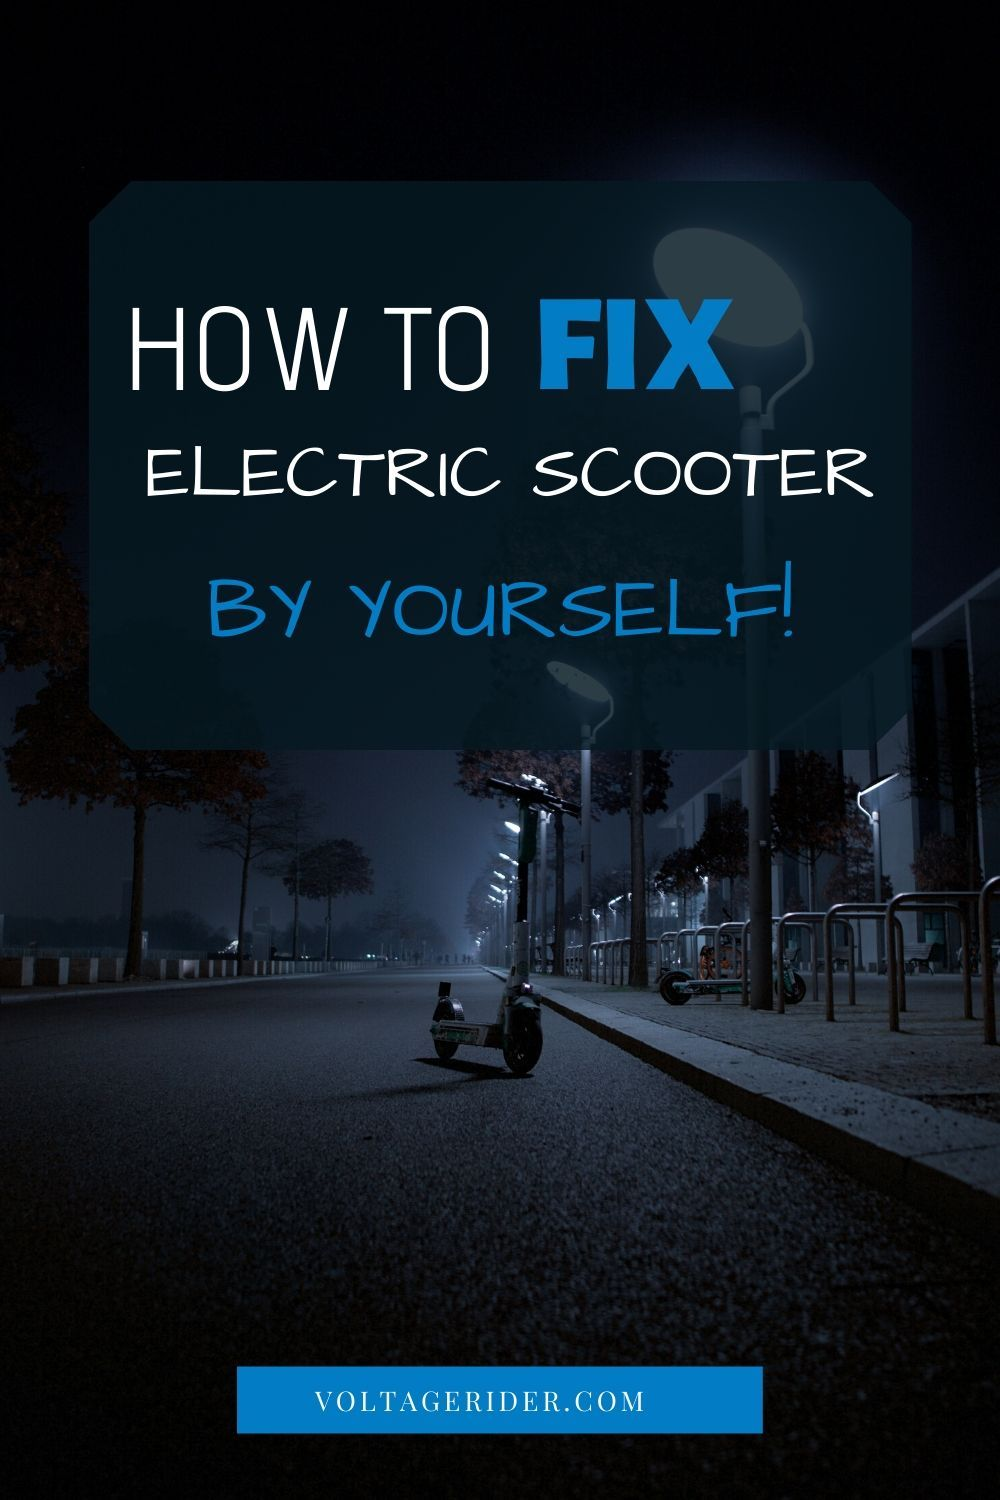 If you're armed with some technical questions about fixing your electric scooter you're at the right place. Here's everything you need to know if you want to repair an electric scooter by yourself! Click through this pin!  #electricscooter #escooter #electricscooters #escooters #fixelectricscooter #fixescooter #escootermaintenance #micromobility #urbanmobility #voltagerider #repairescooter #escoot #electricscootermaintenance